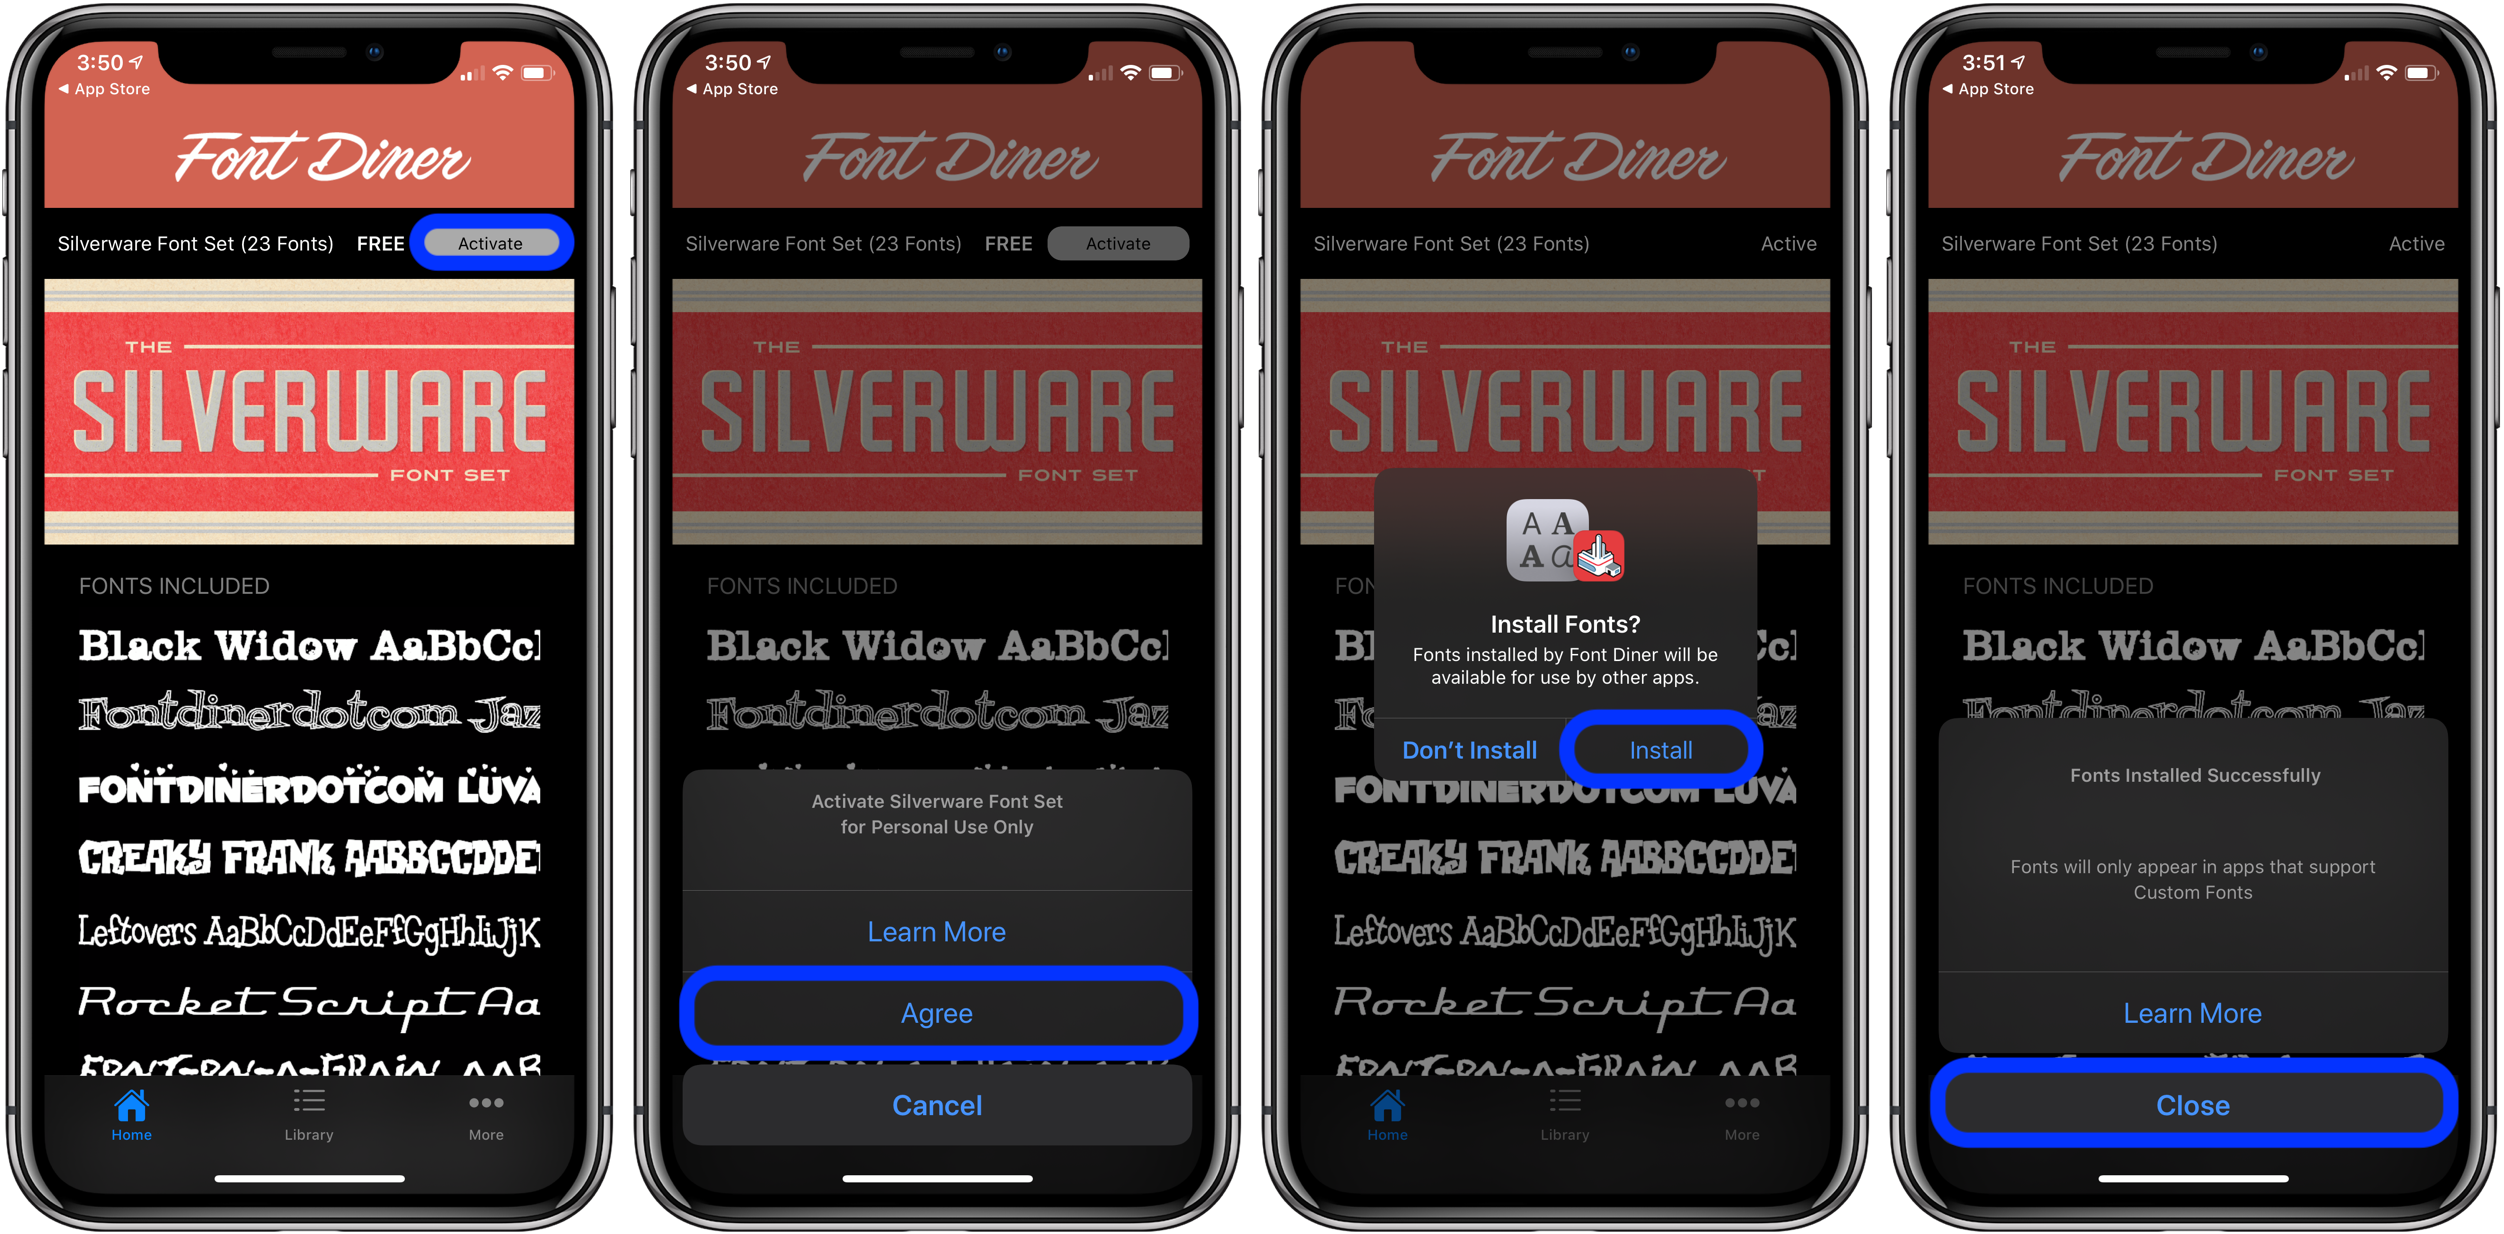 iOS 13: How to use custom fonts on iPhone and iPad - 9to5Mac